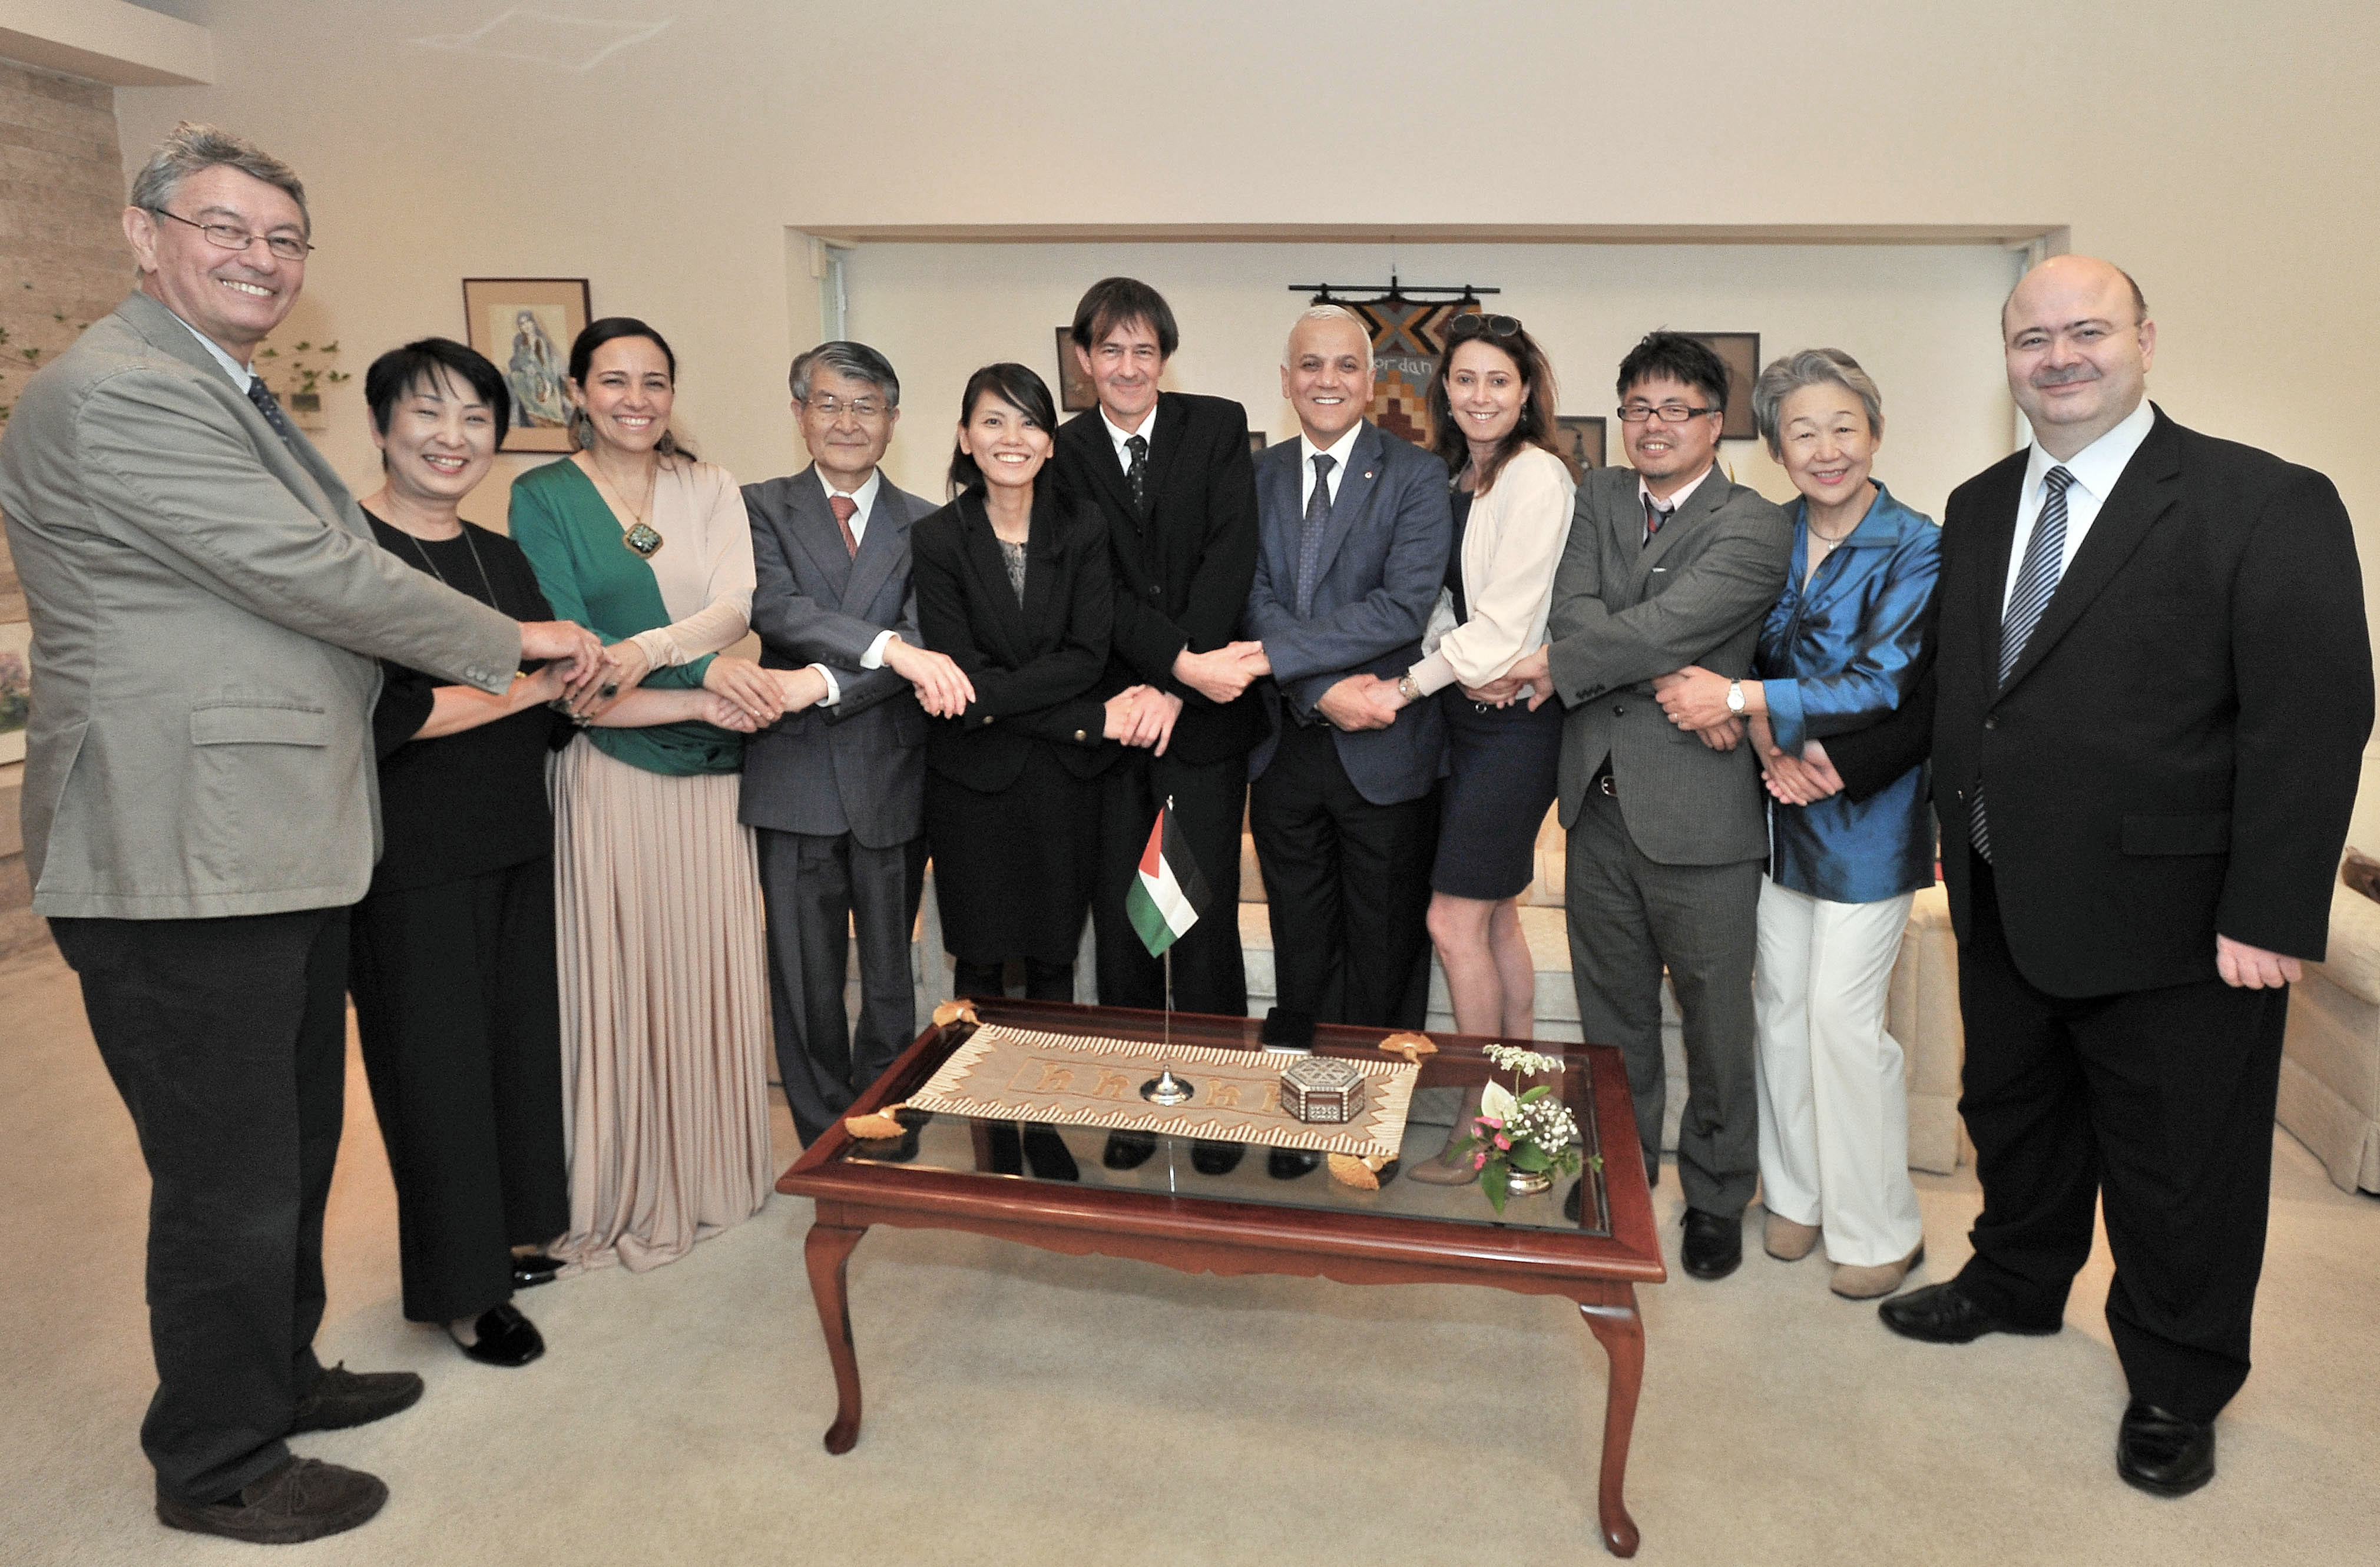 Ayman R. Al-Mufleh (center, fifth from right), secretary-general of the Jordan Hashemite Charity Organization, stands next to his wife, Loubna Bedair, at the Jordanian ambassador's residence in Tokyo on May 21 to celebrate Jordan's Independence Day with Jordan Ambassador to Japan Demiye Haddad (right) and the ambassador's wife, Shifa (third from left), as well as Japanese members of nongovernment organizations who have been supporting refugees in Jordan. | YOSHIAKI MIURA